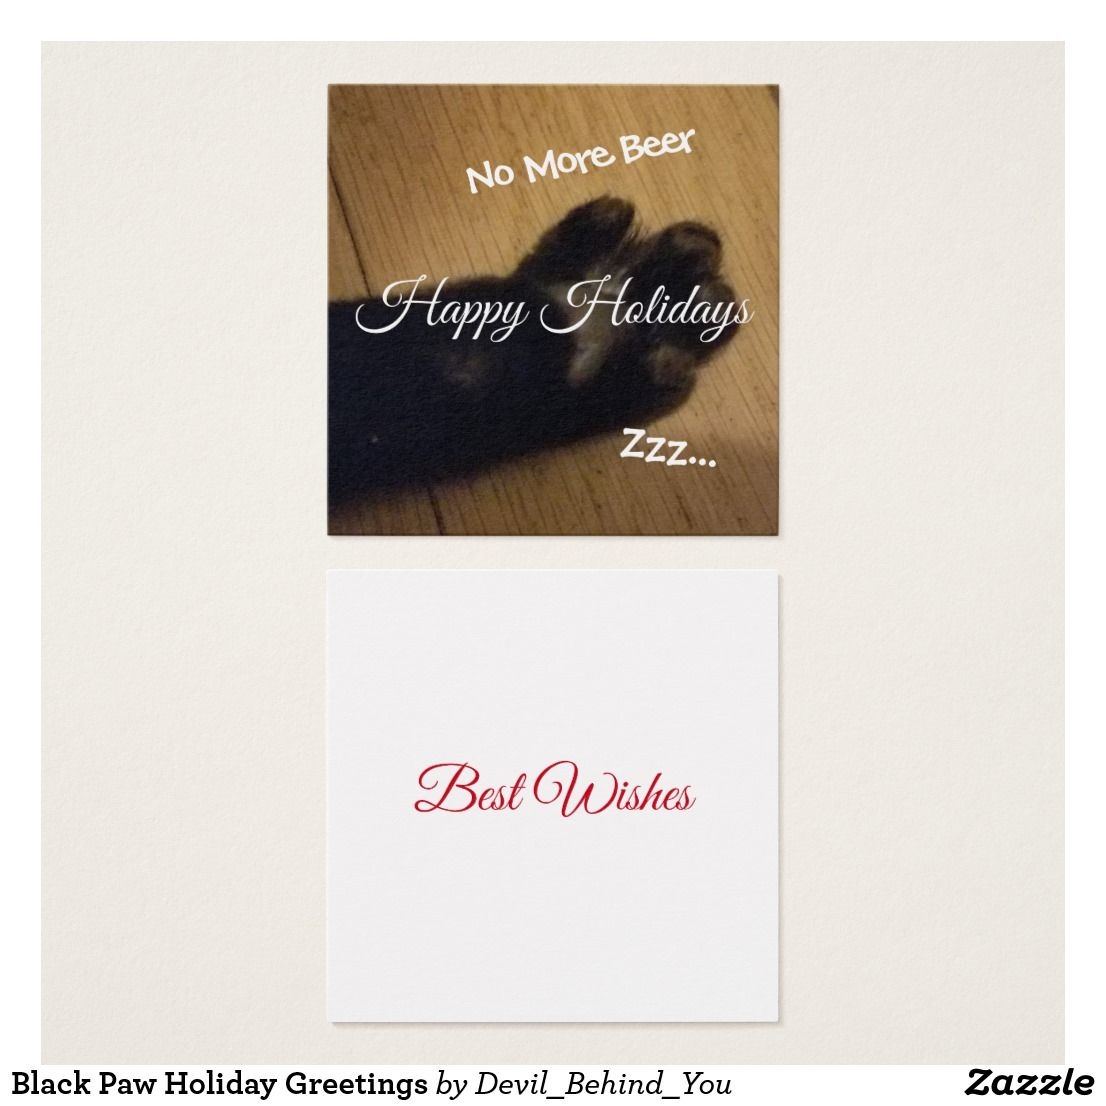 Black Paw Holiday Greetings Square Business Card | DBY miscellaneous ...